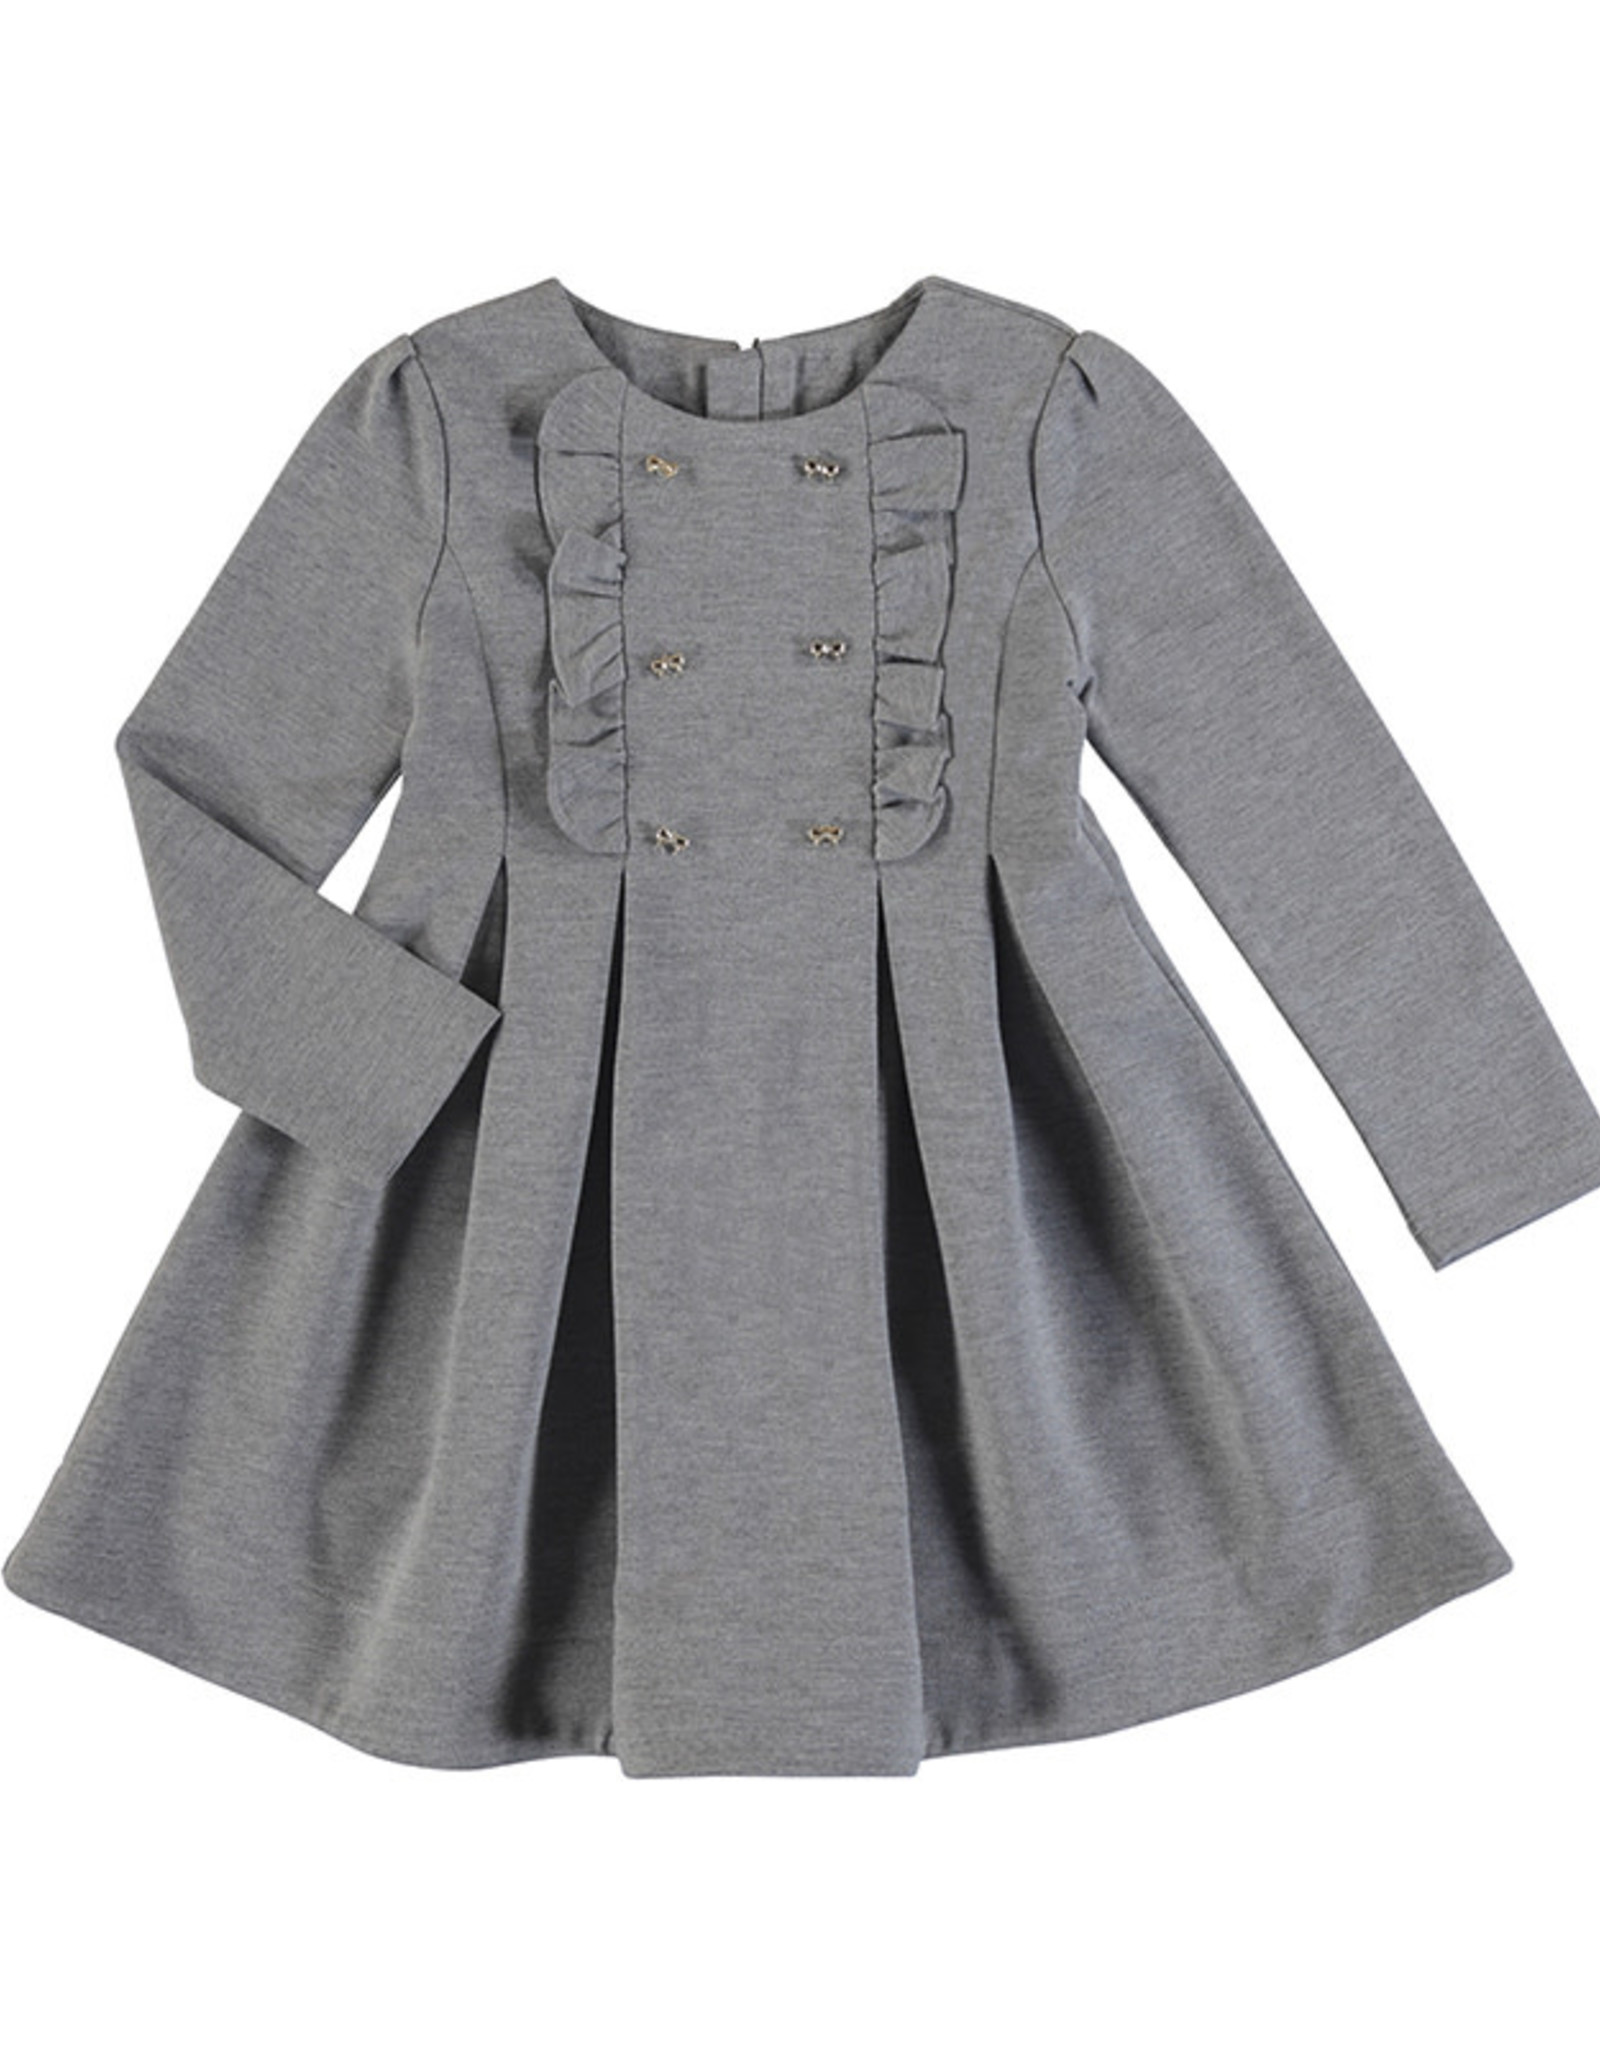 Mayoral Grey Knit Dress with Gold Double Buttons and Ruffle